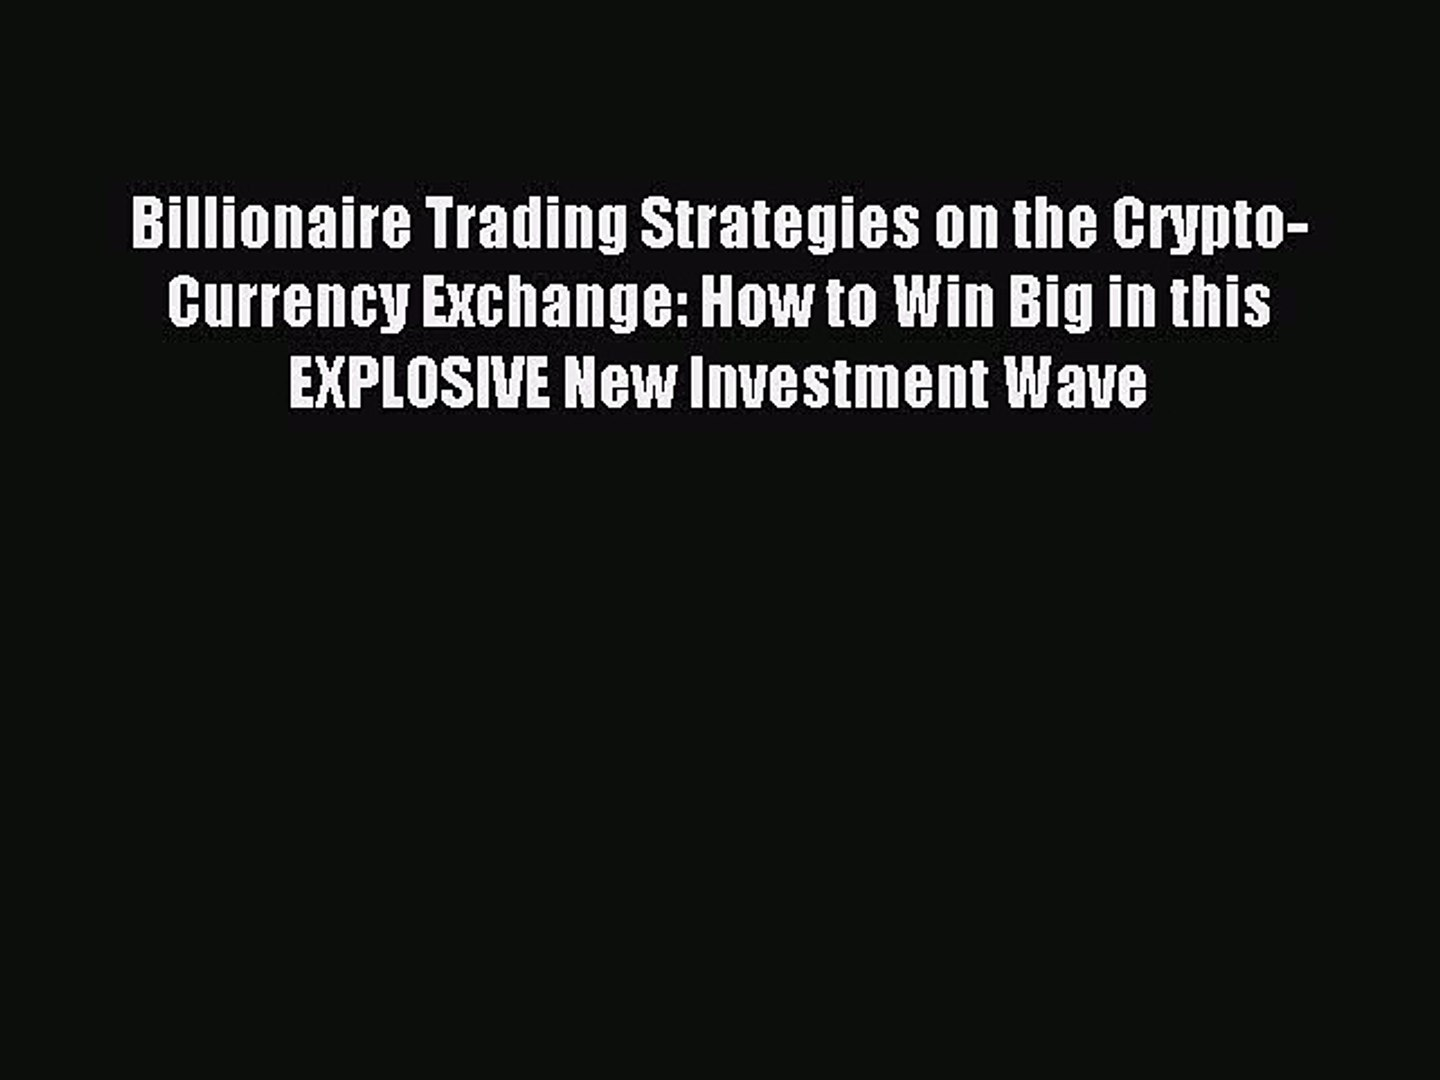 Download Billionaire Trading Strategies on the Crypto-Currency Exchange: How to Win Big in